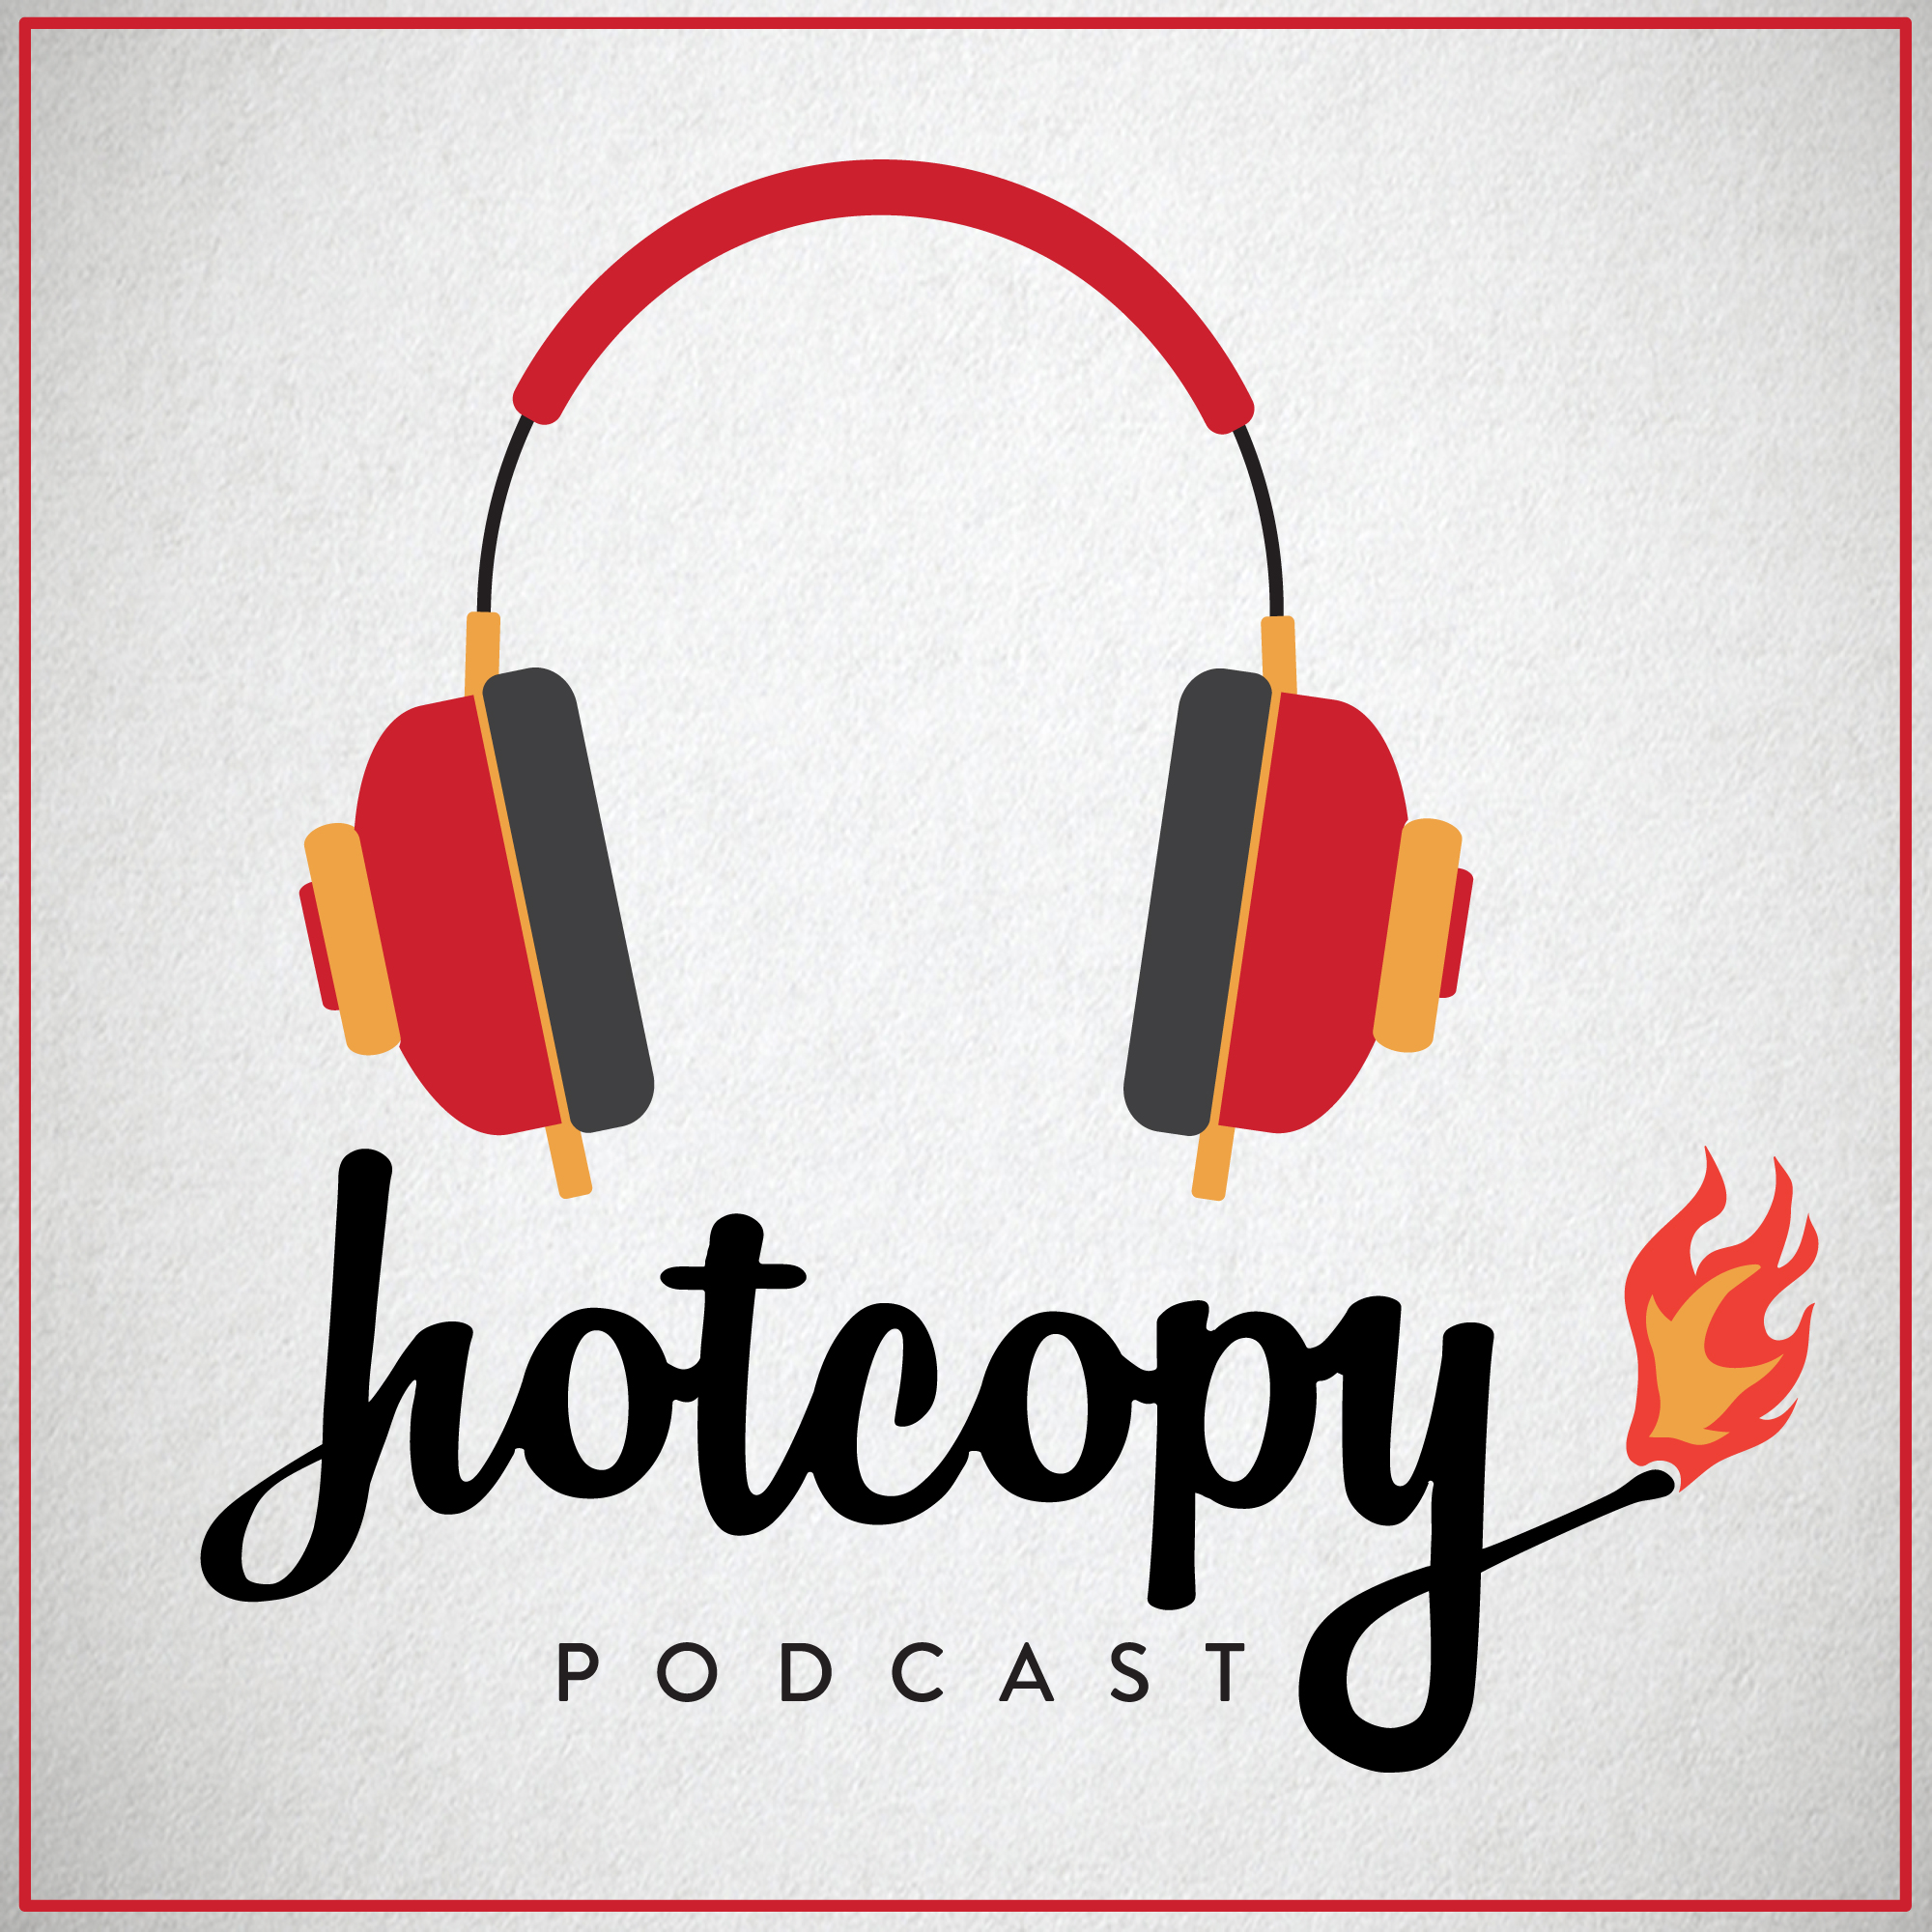 Hot Copy copywriting podcast logo